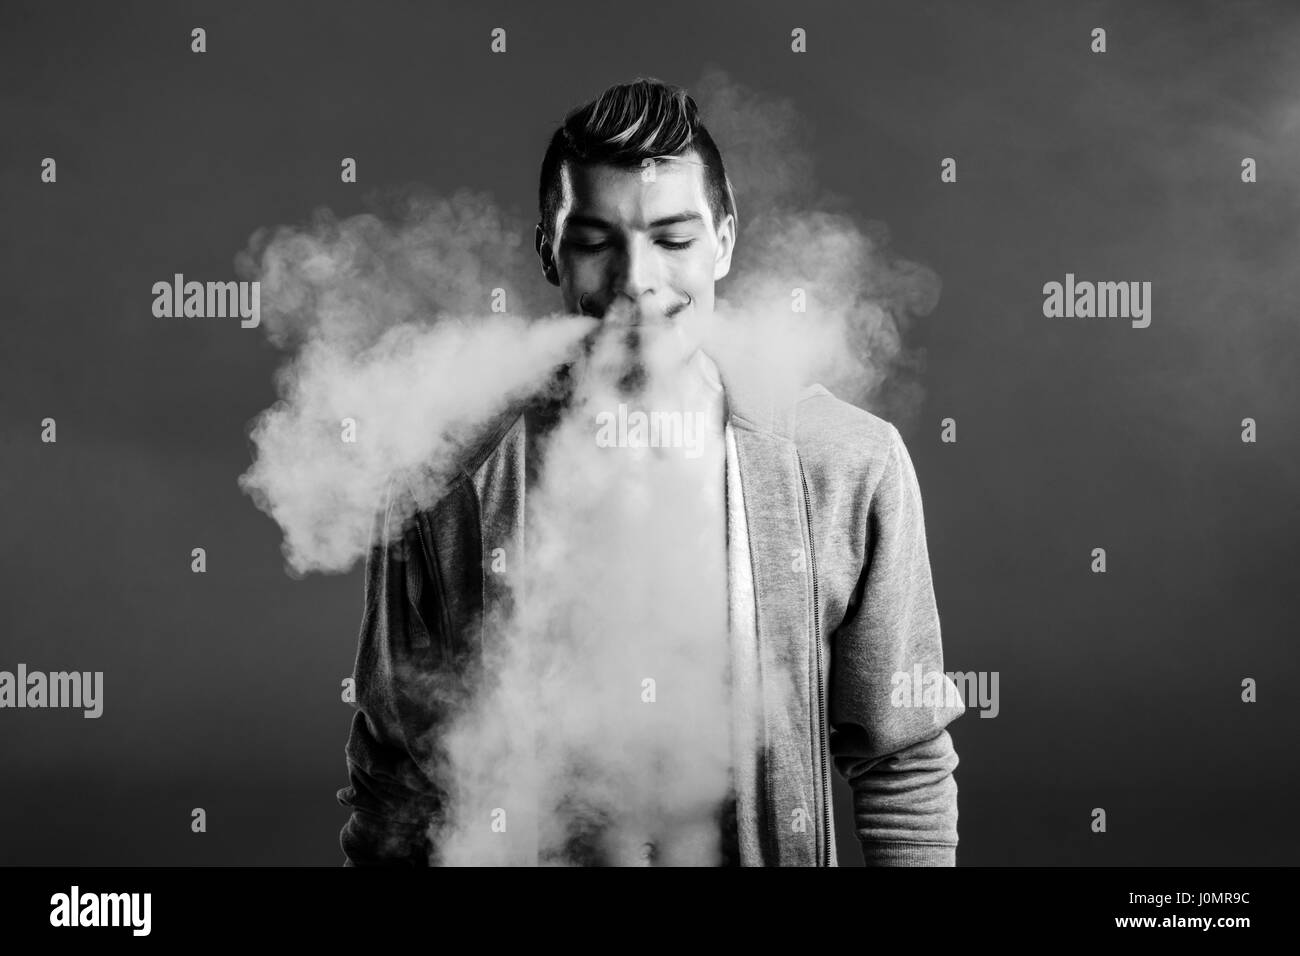 Black and white photo of young handsome man vaping and blowing smoke - Stock Image